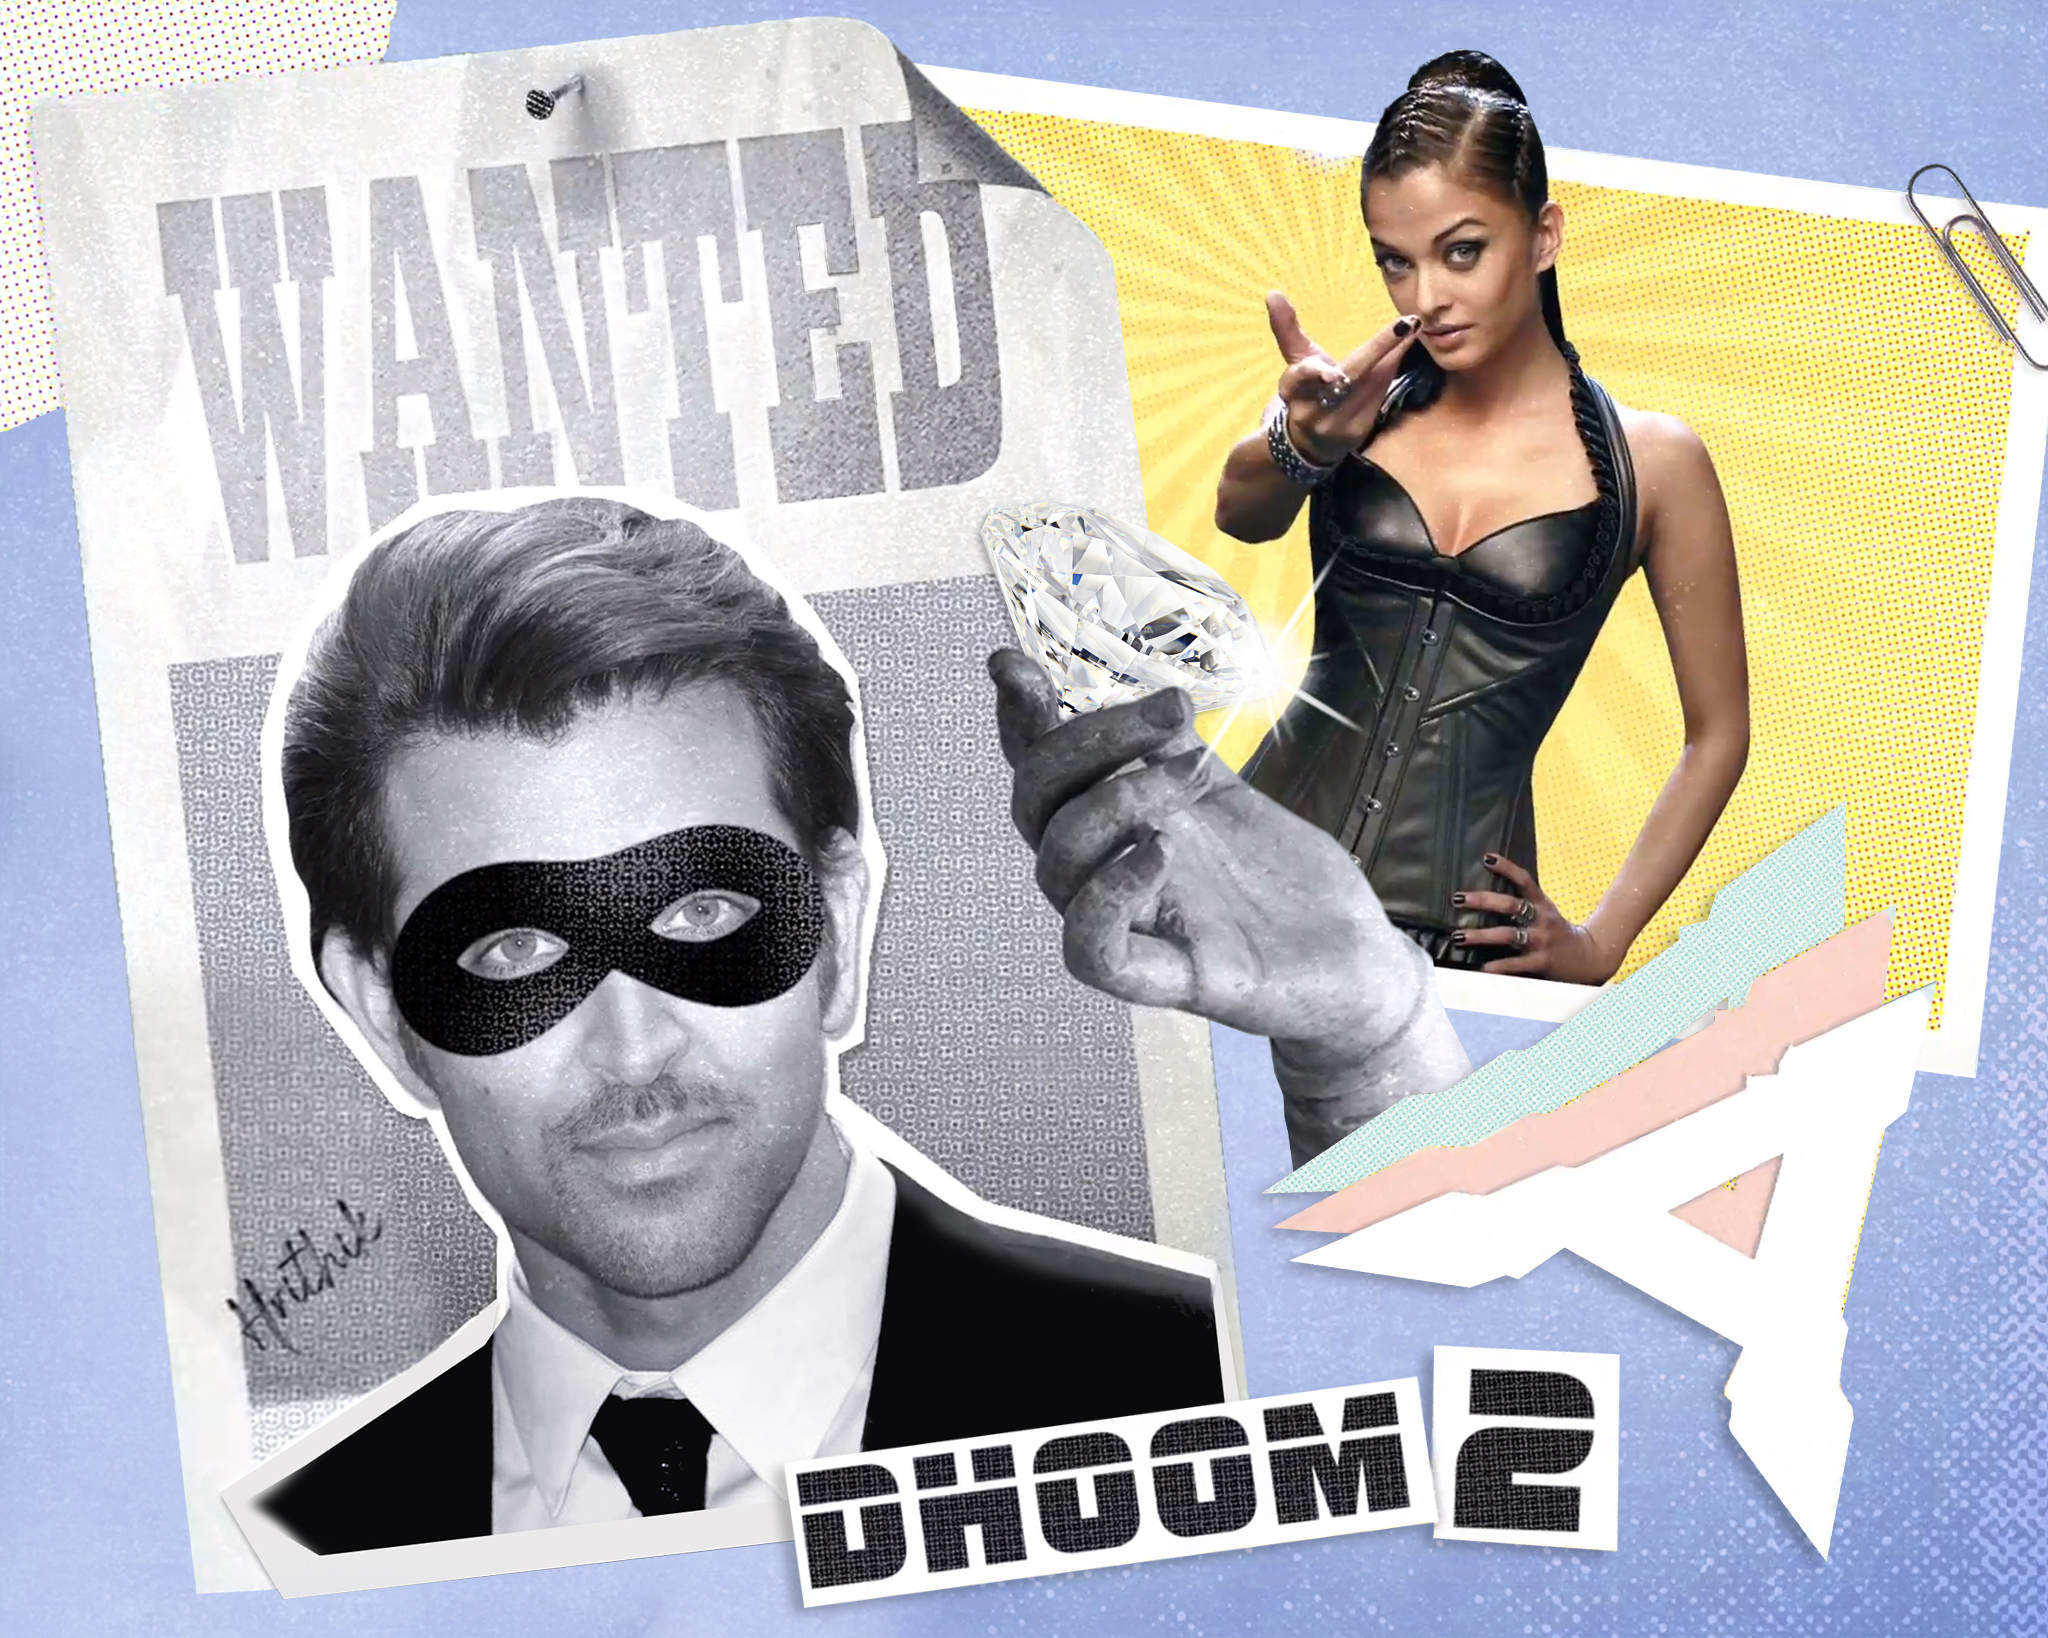 In the Bollywood hit 'Dhoom 2', two glamorous crooks team up to steal a precious diamond from a museum